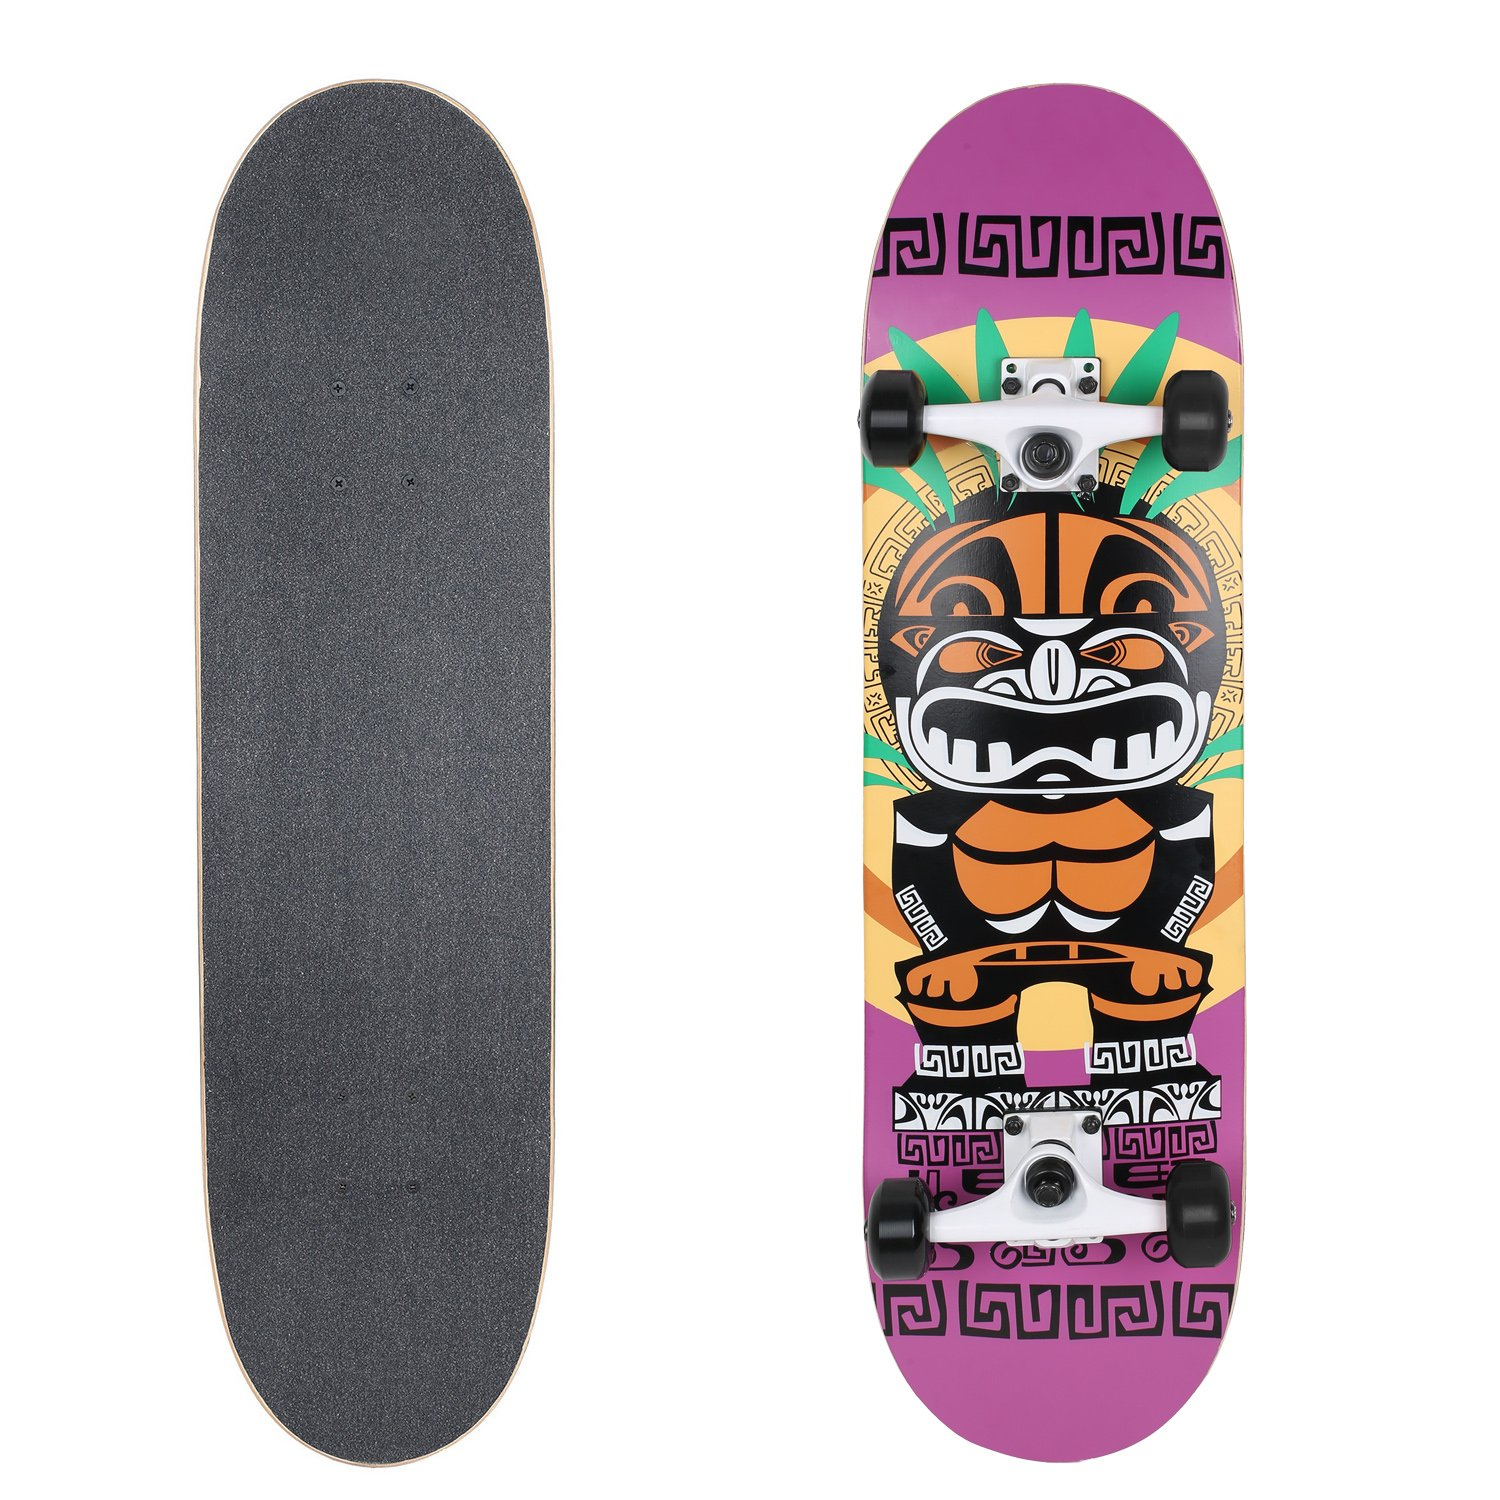 VOKUL 31'' X 8'' Complete Standard Skateboard with 7 Layer Maple Wood Cruiser Skateboard Deck for Kids Youths Adults (Black Wheels)